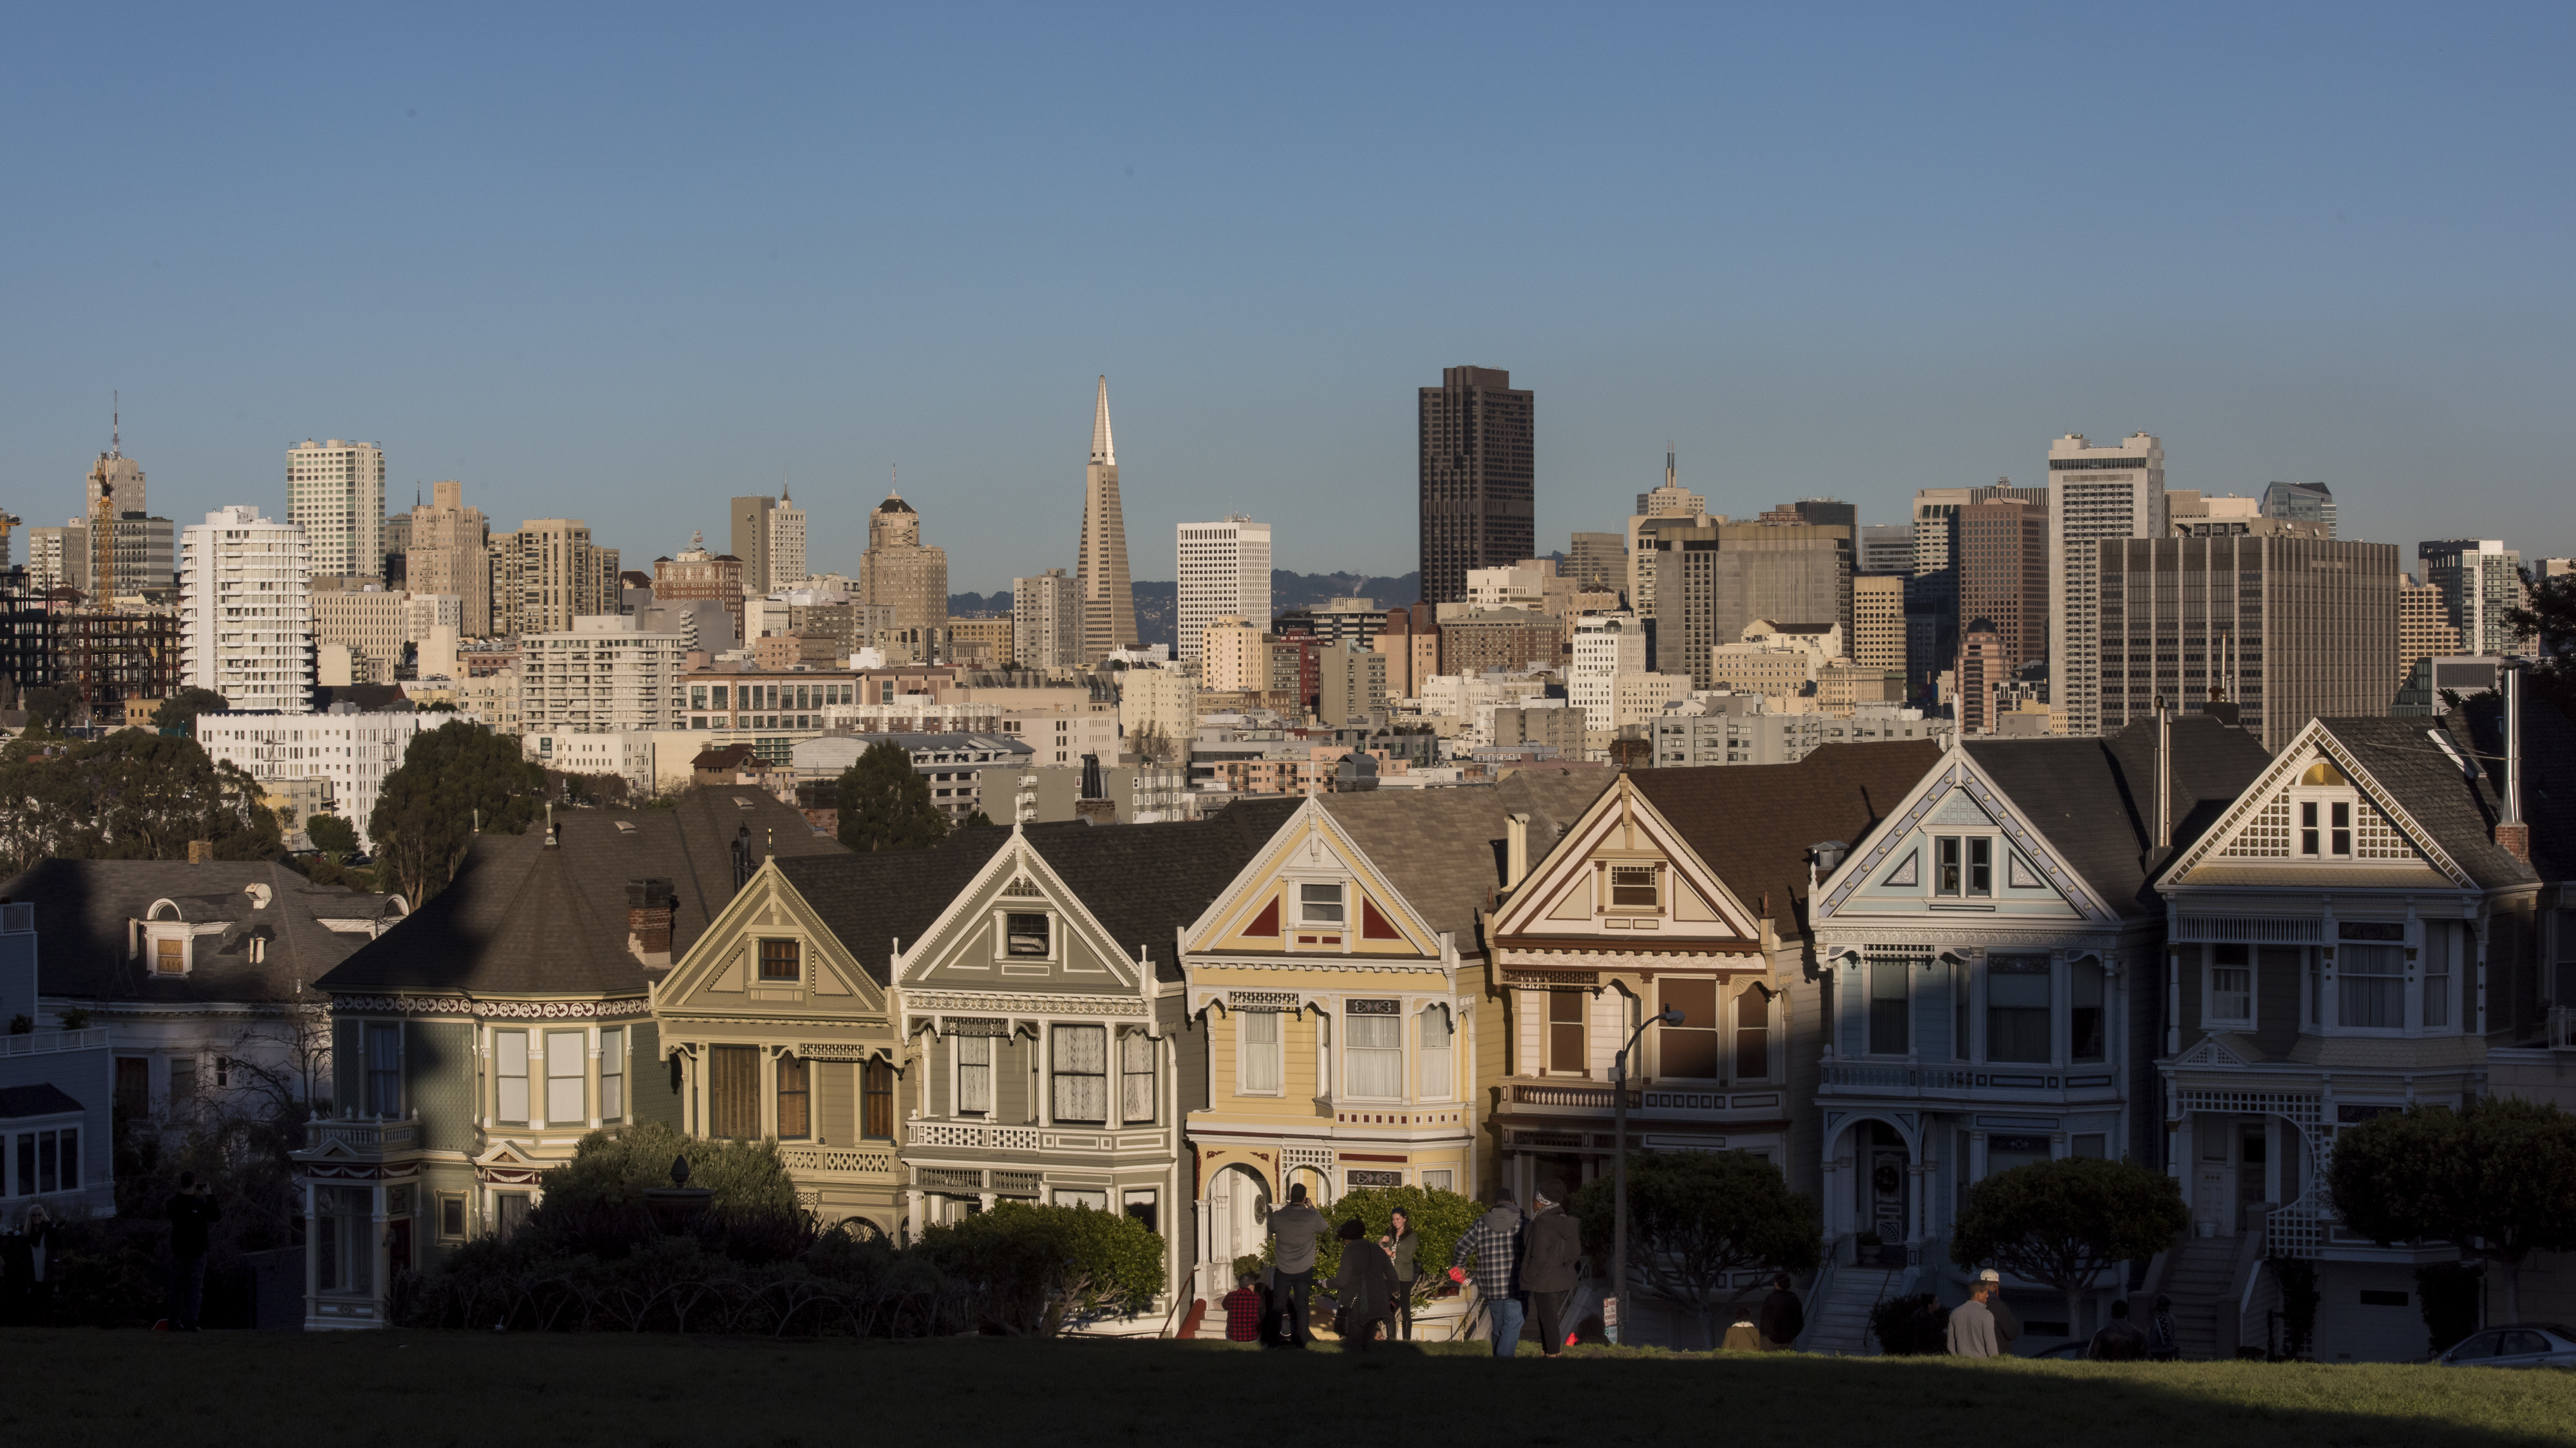 Existing Homes For Sale As Prices in 20 U.S. Cities Rise At A Faster Pace